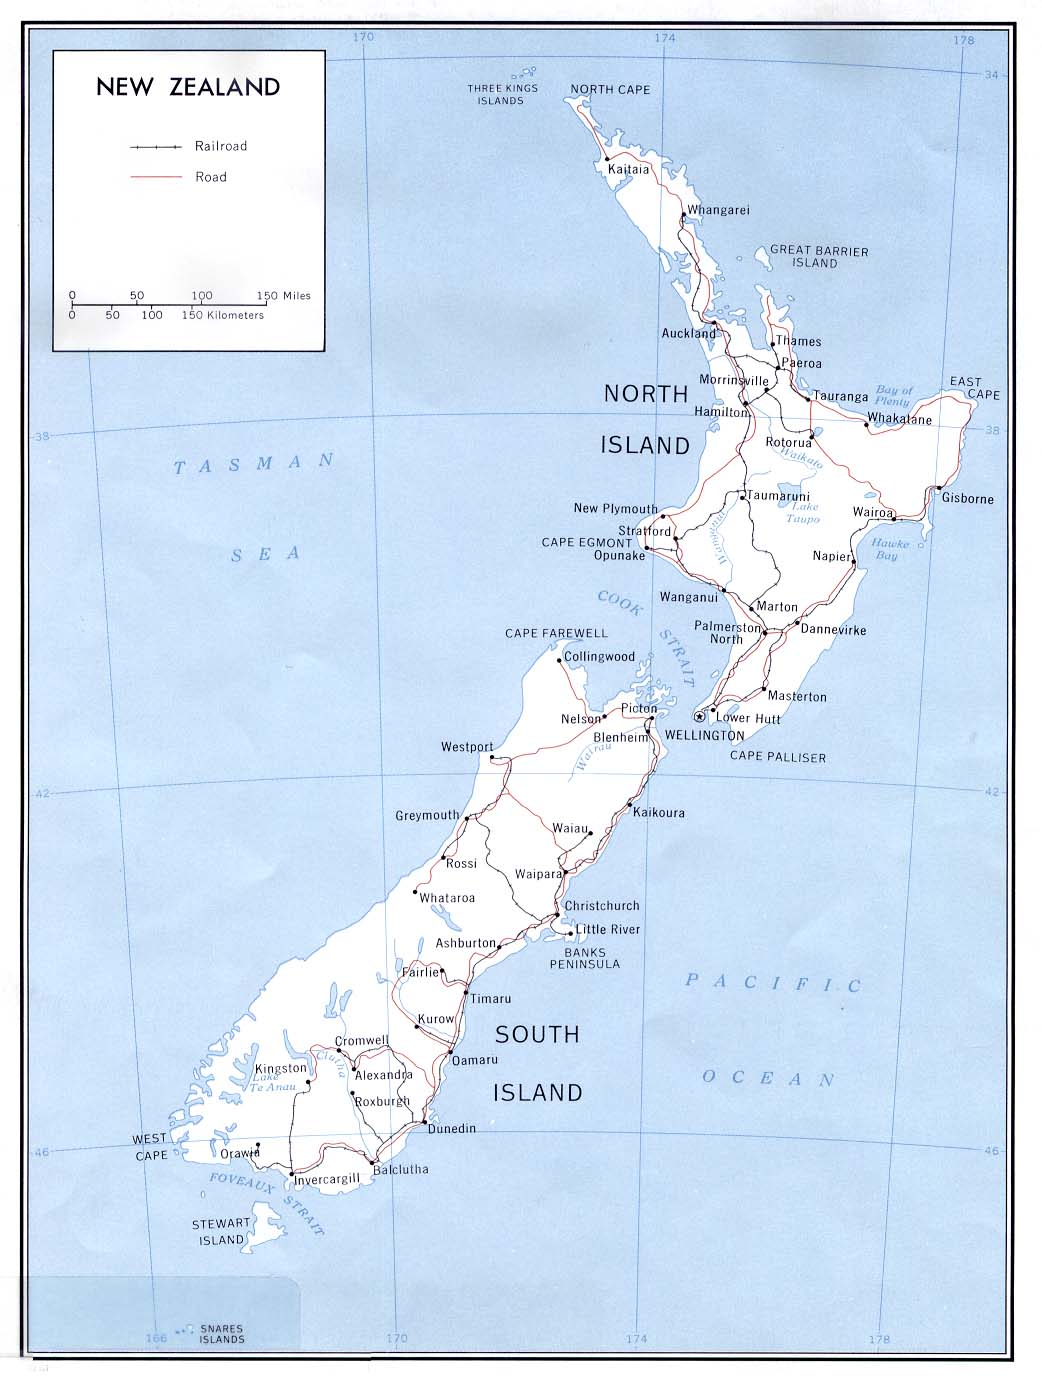 Hamilton New Zealand Map.New Zealand Maps Perry Castaneda Map Collection Ut Library Online